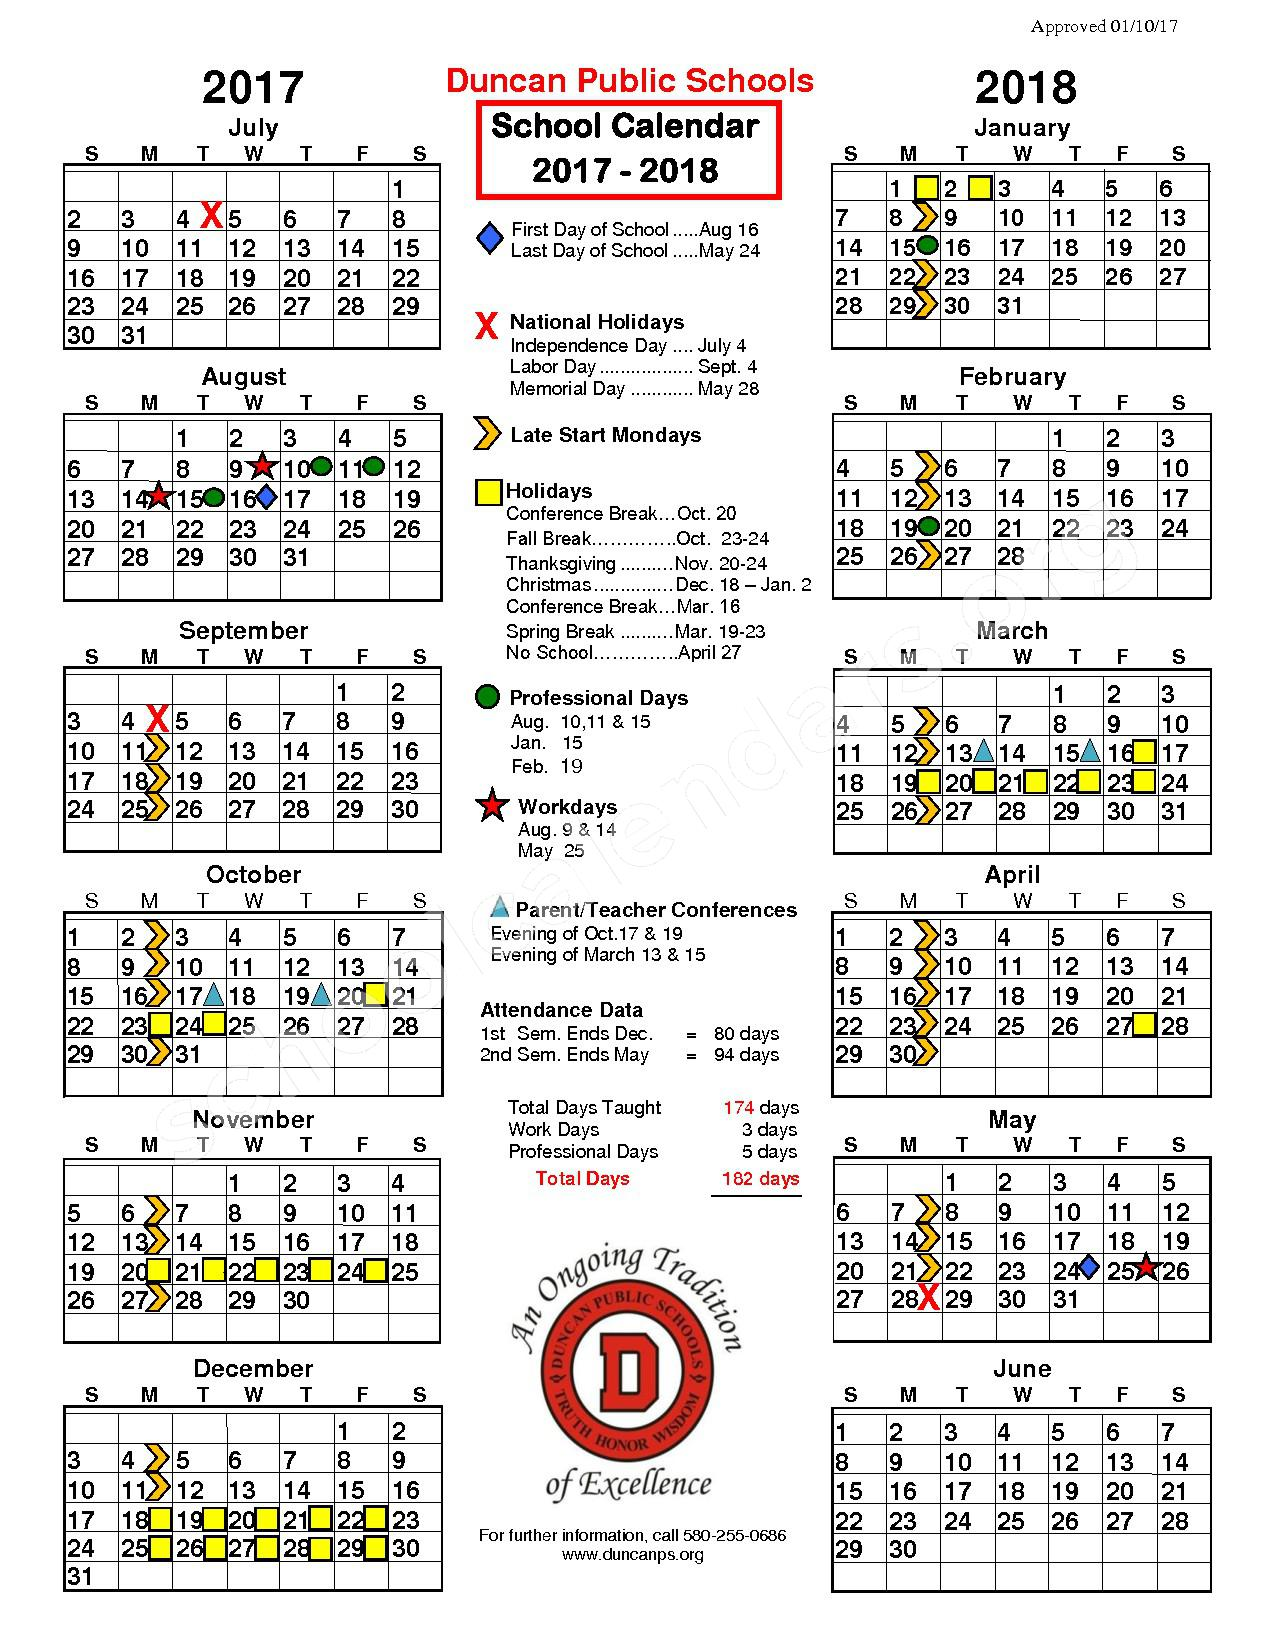 2017 - 2018 District Calendar – Duncan Public Schools – page 1